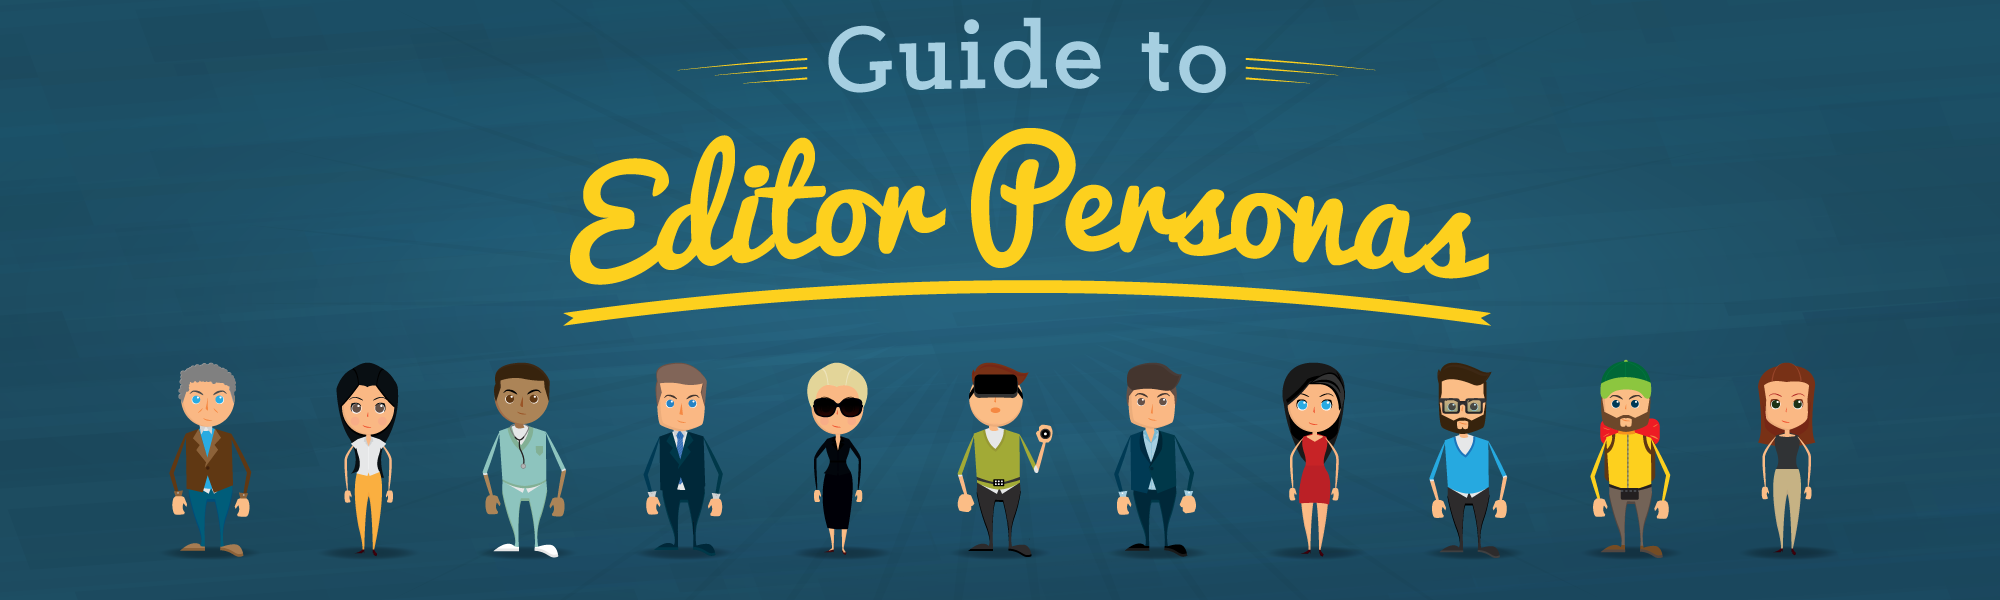 Guide to Editor and Marketing Influencer Personas